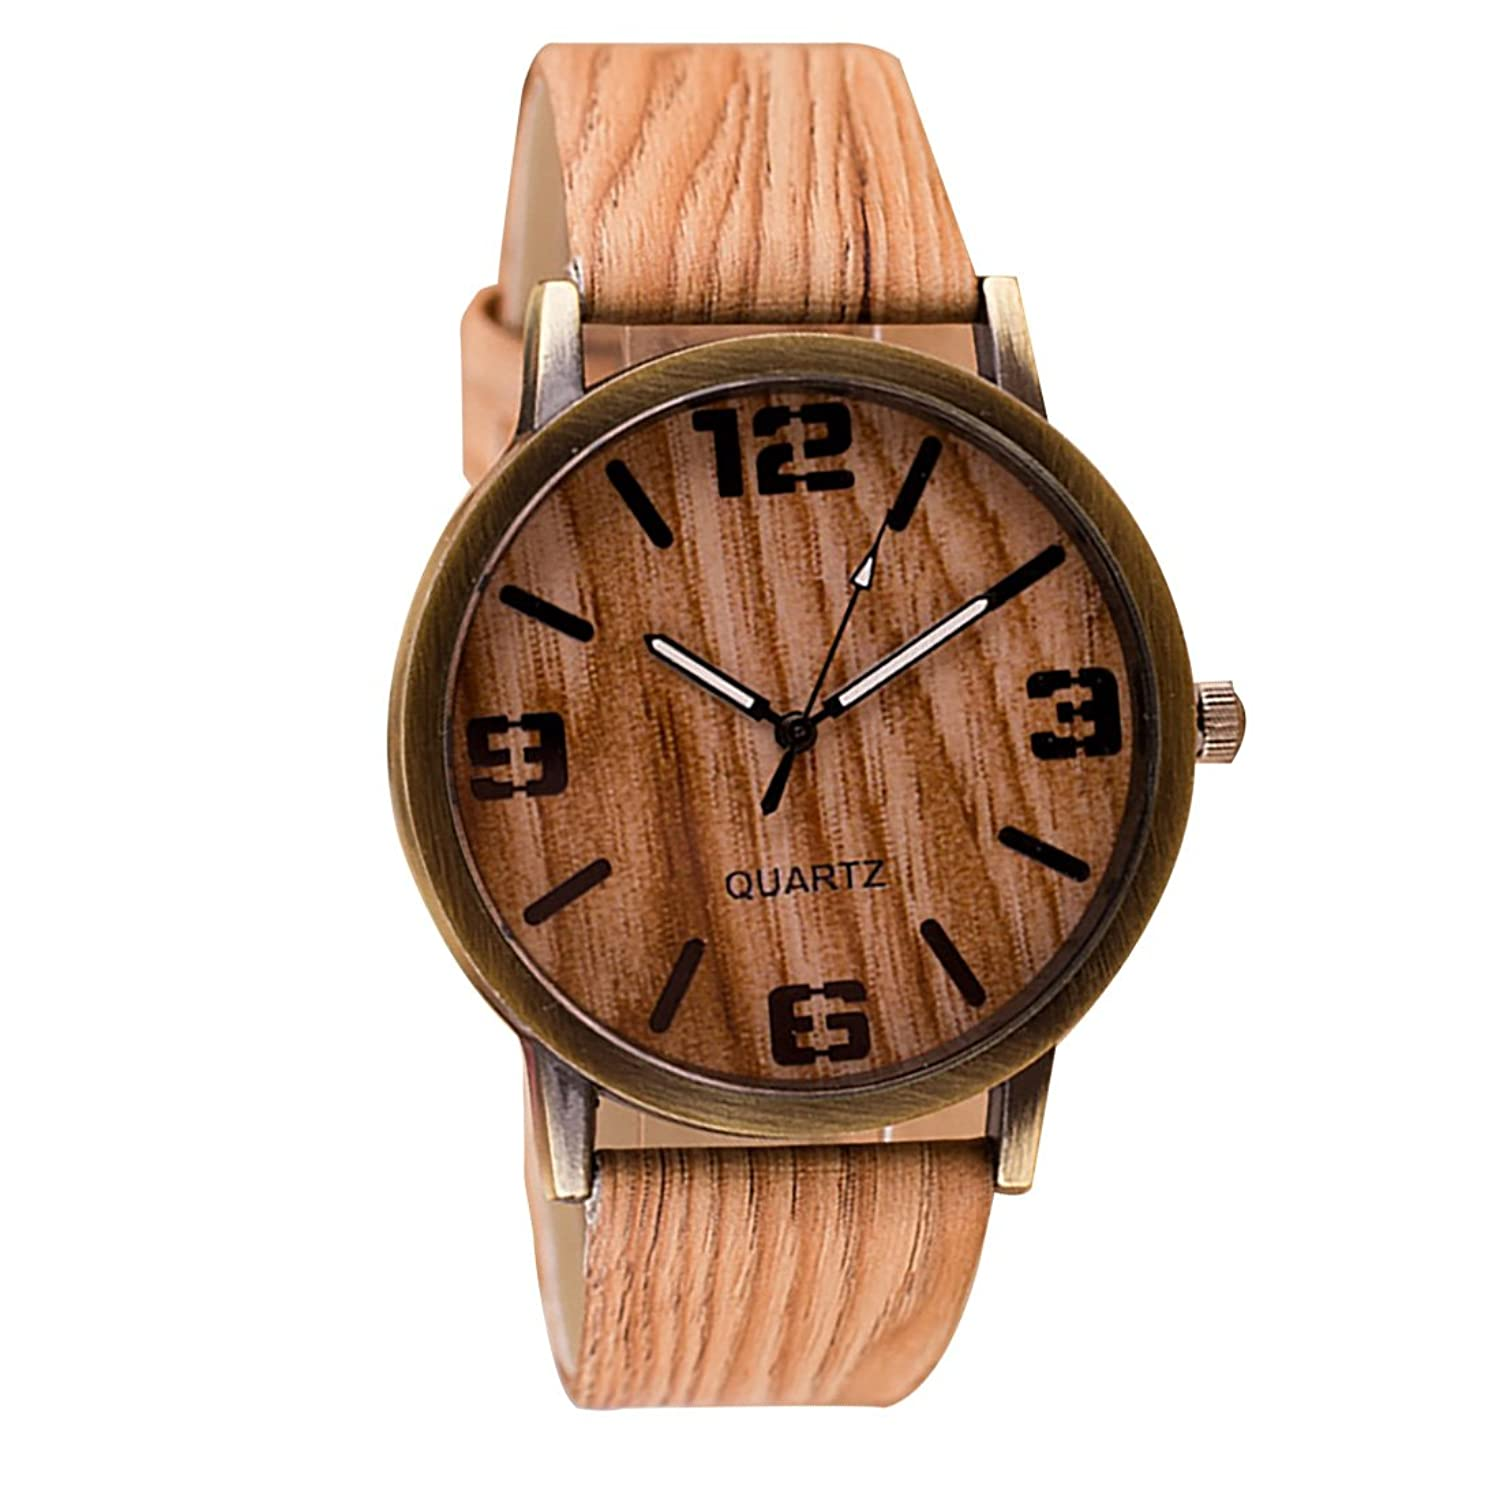 Joylive Cy Fashion Casual Dress Pu Leather Lovers Men Watches Wood Pattern Wristwatch For Male Gifts5# by Joylive Cy